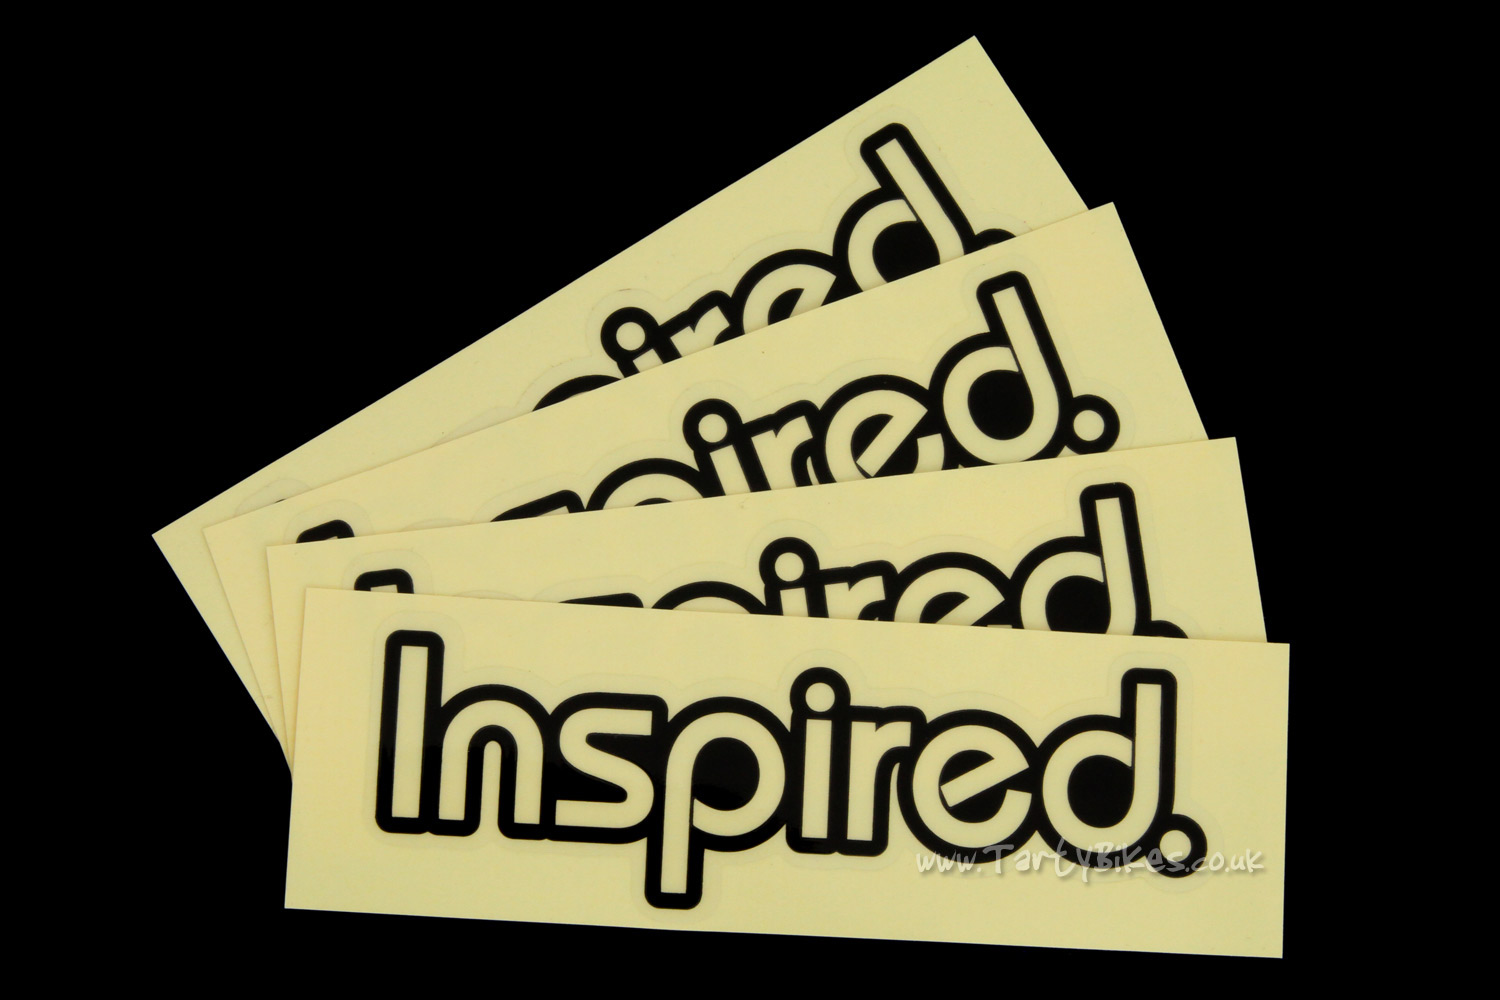 Inspired Printed Stickers